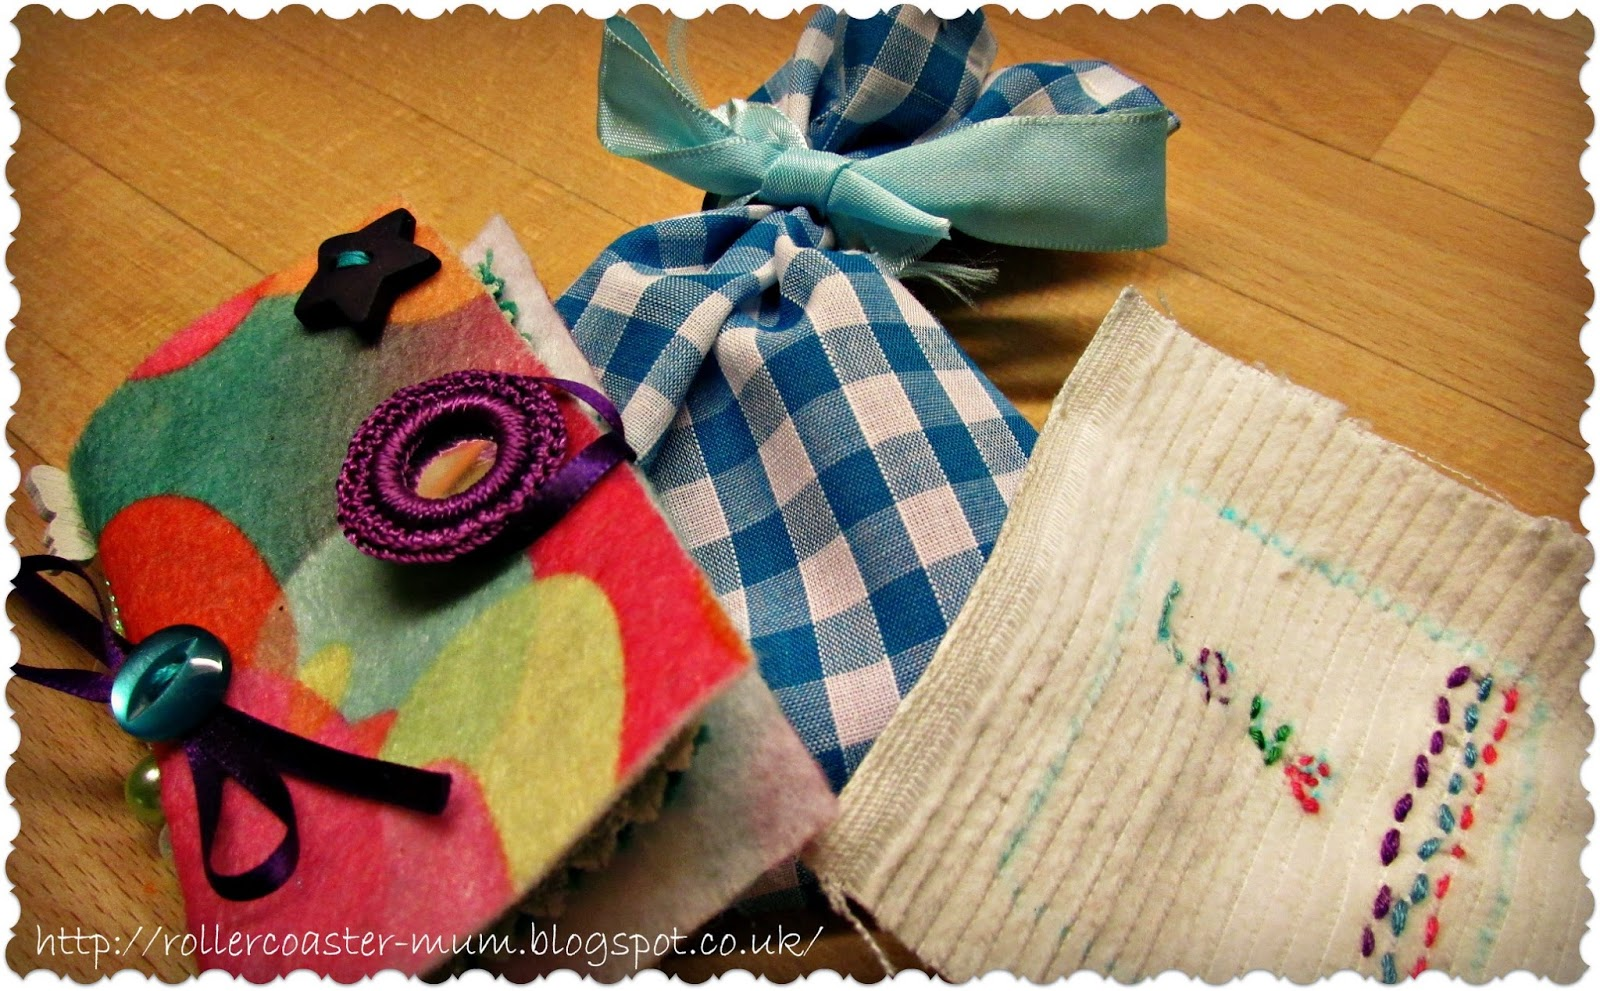 easy sewing projects- needle case, gift bag and badge